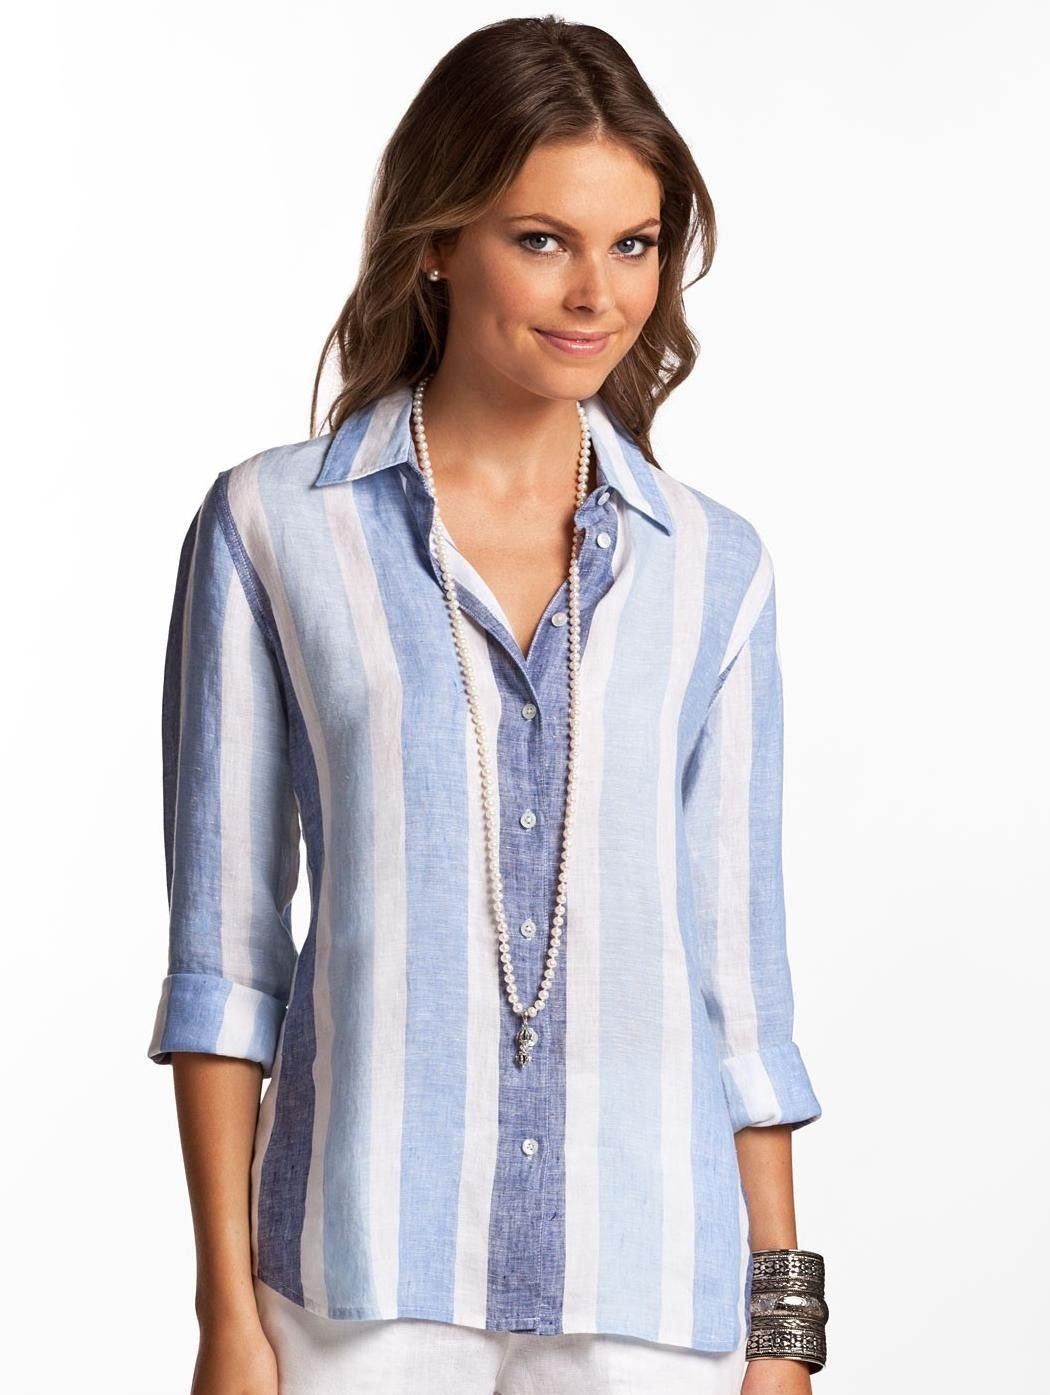 buckley classic blue striped linen shirt for women